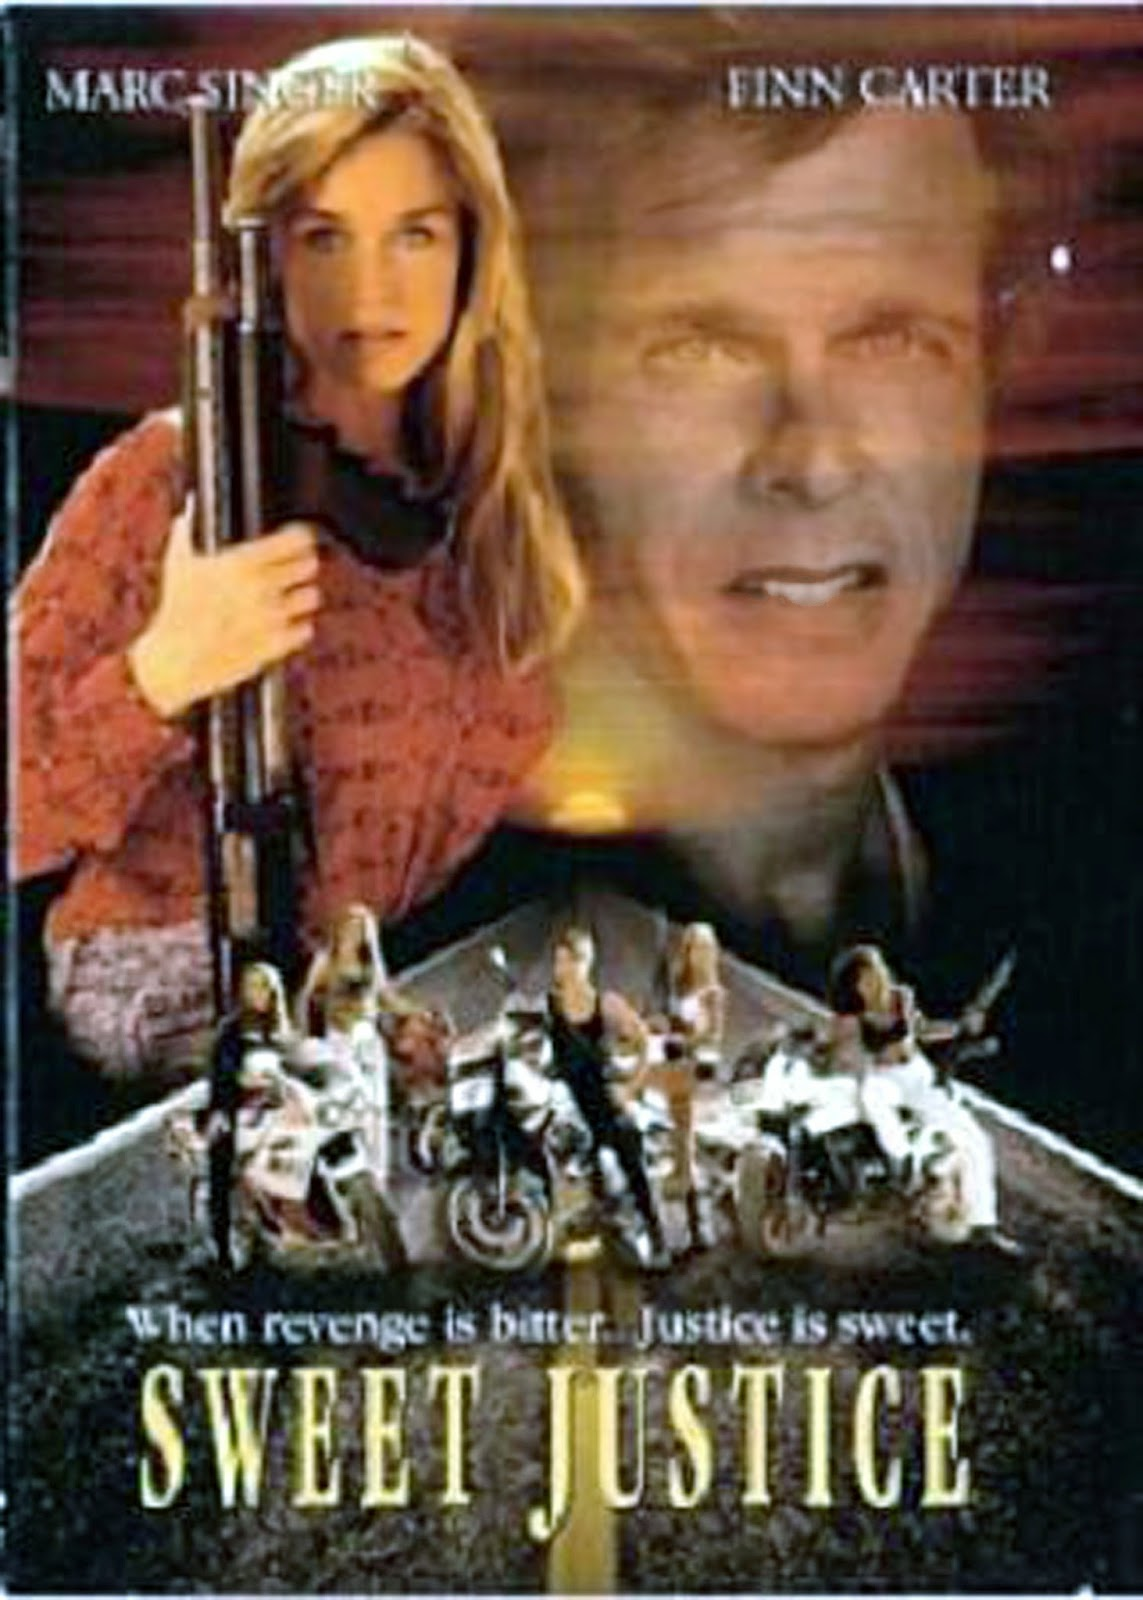 Sweet Justice (1992)